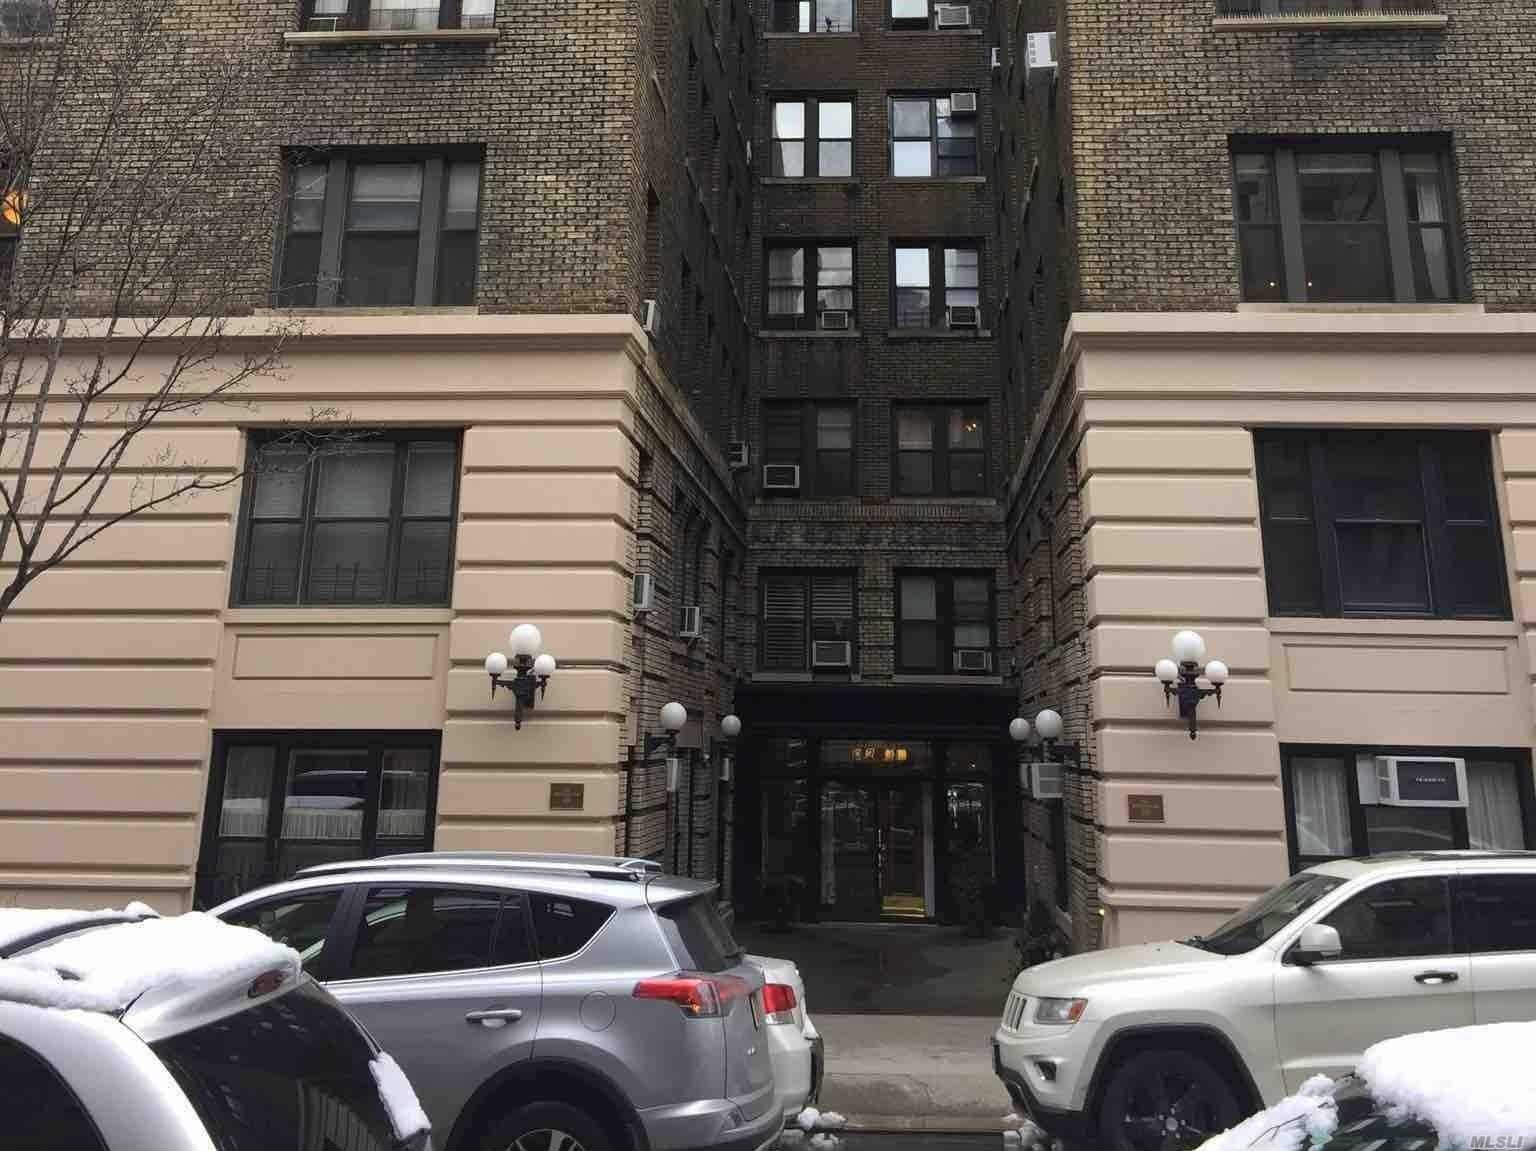 Condo Style Home On The Upper West Side Of Nyc. This Condo Features 2 Br, Lr, & Dr. Laundry In The Building, Live-In Super & Full Time Doorman. Bike Rm And Concierge. Centrally Located To All. Don't Miss This Op